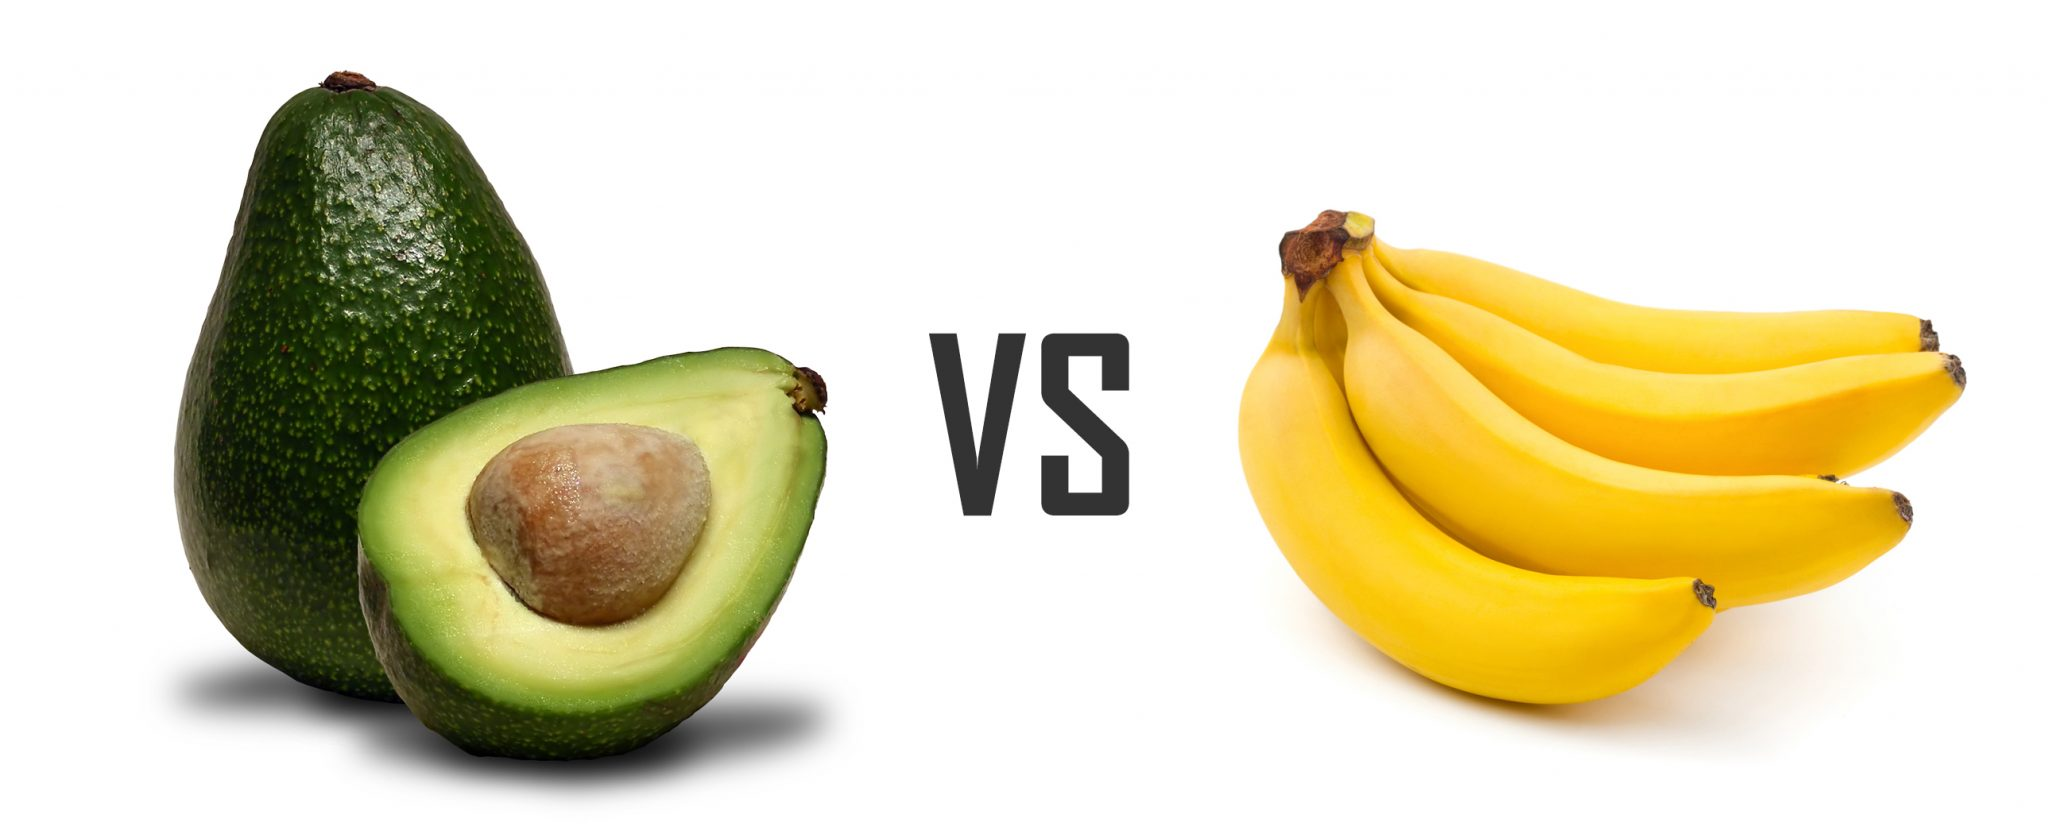 Avocado Vs Banana